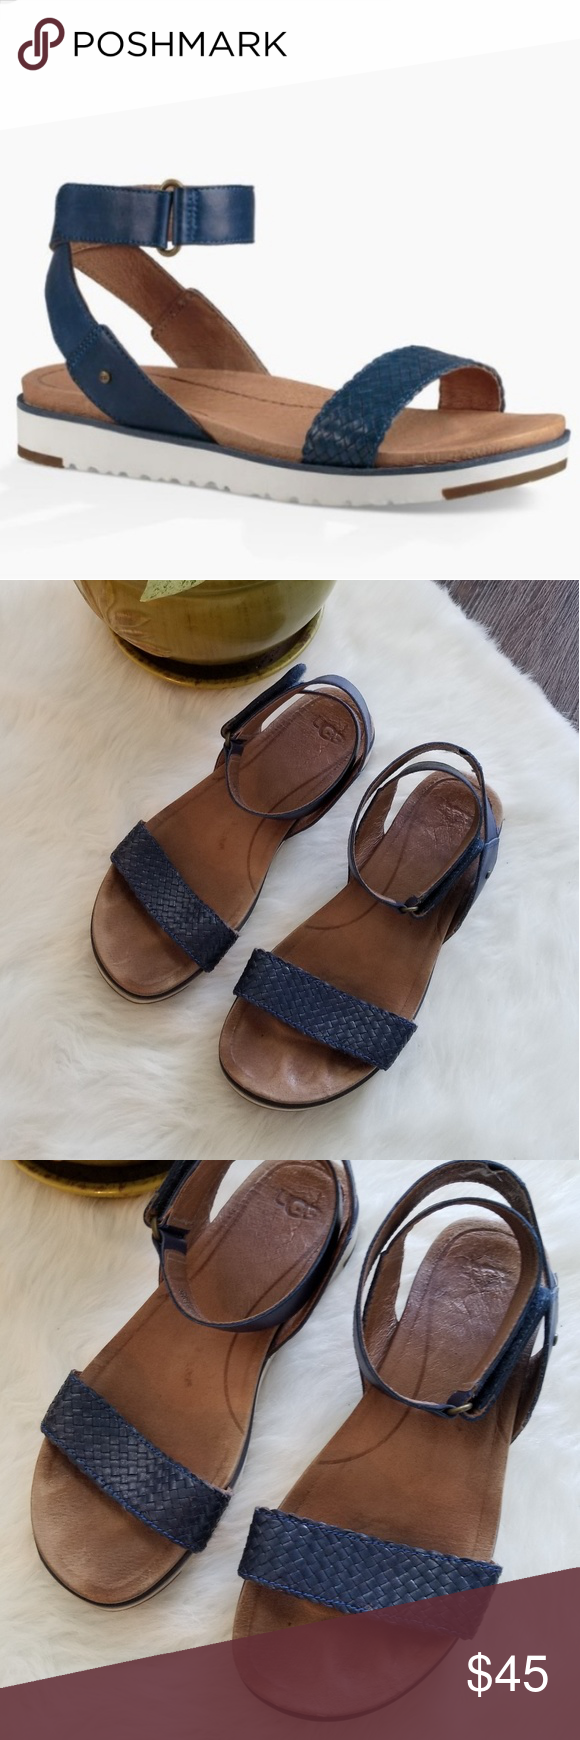 da9c709c8bb Ugg Laddie ankle strap shoes Very cute and comfortable shoes. In ...